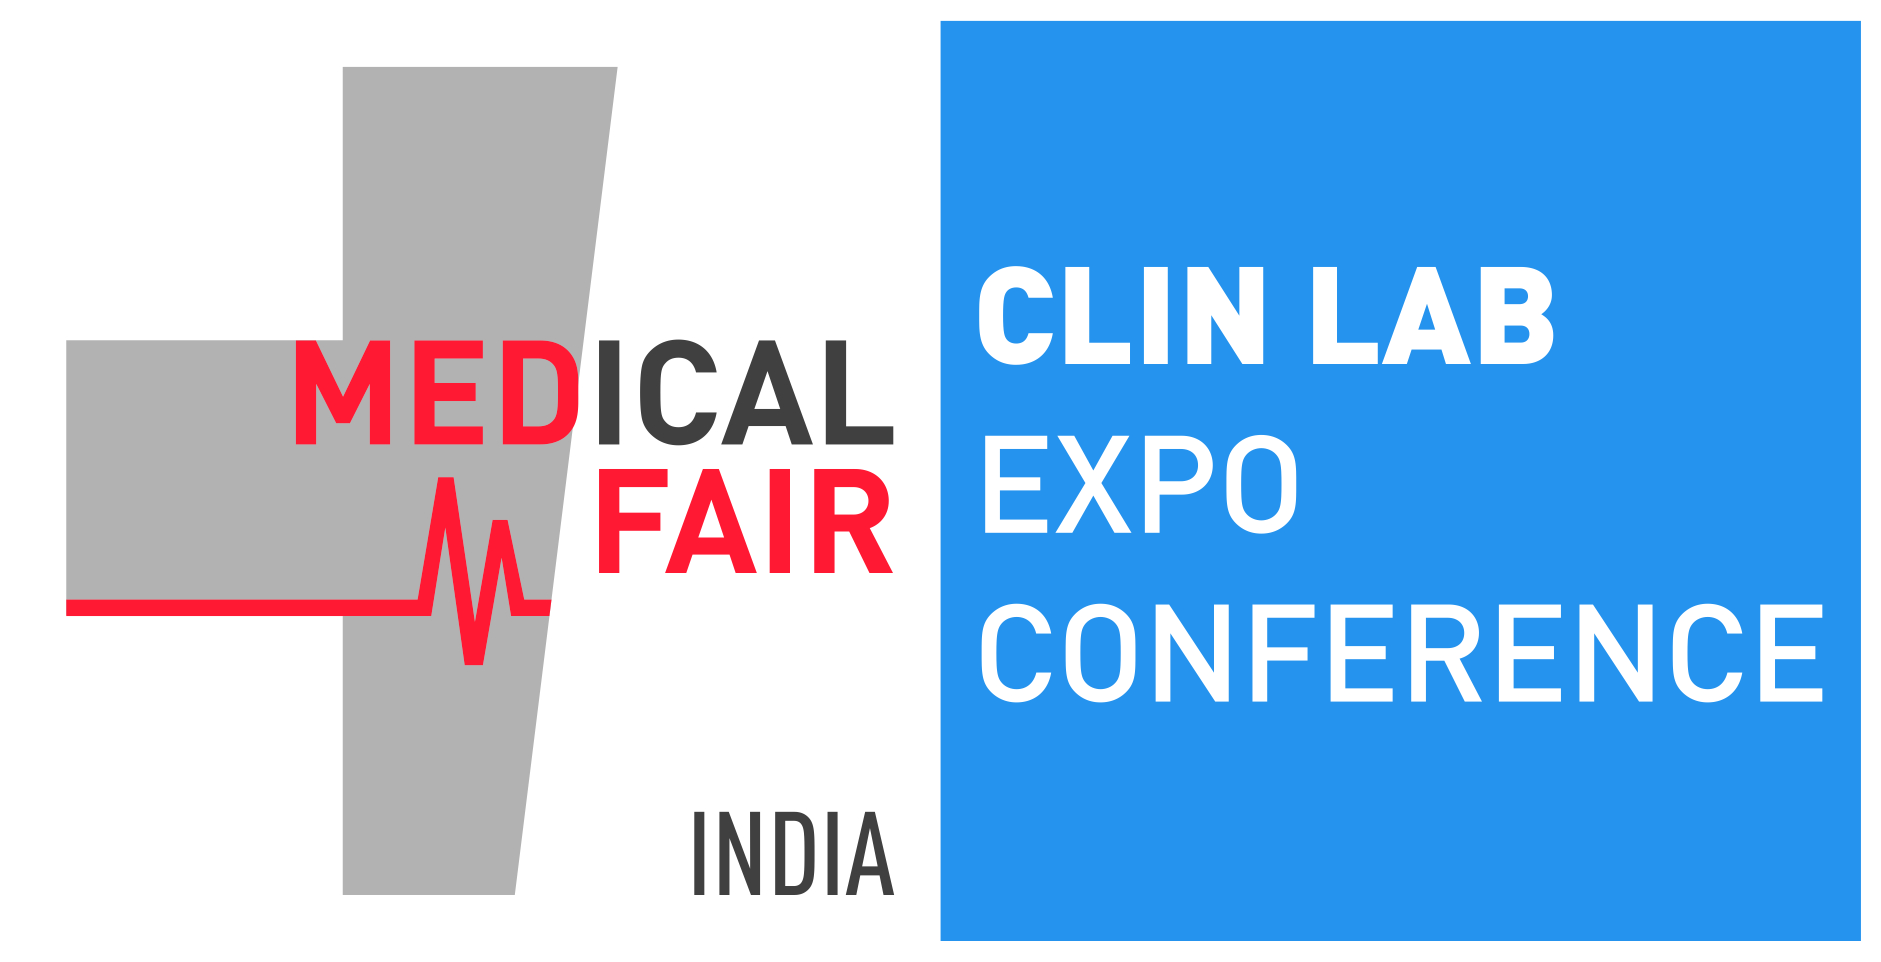 Medical Fair India – CLINLAB Conference 2019 – February 21st & 22nd